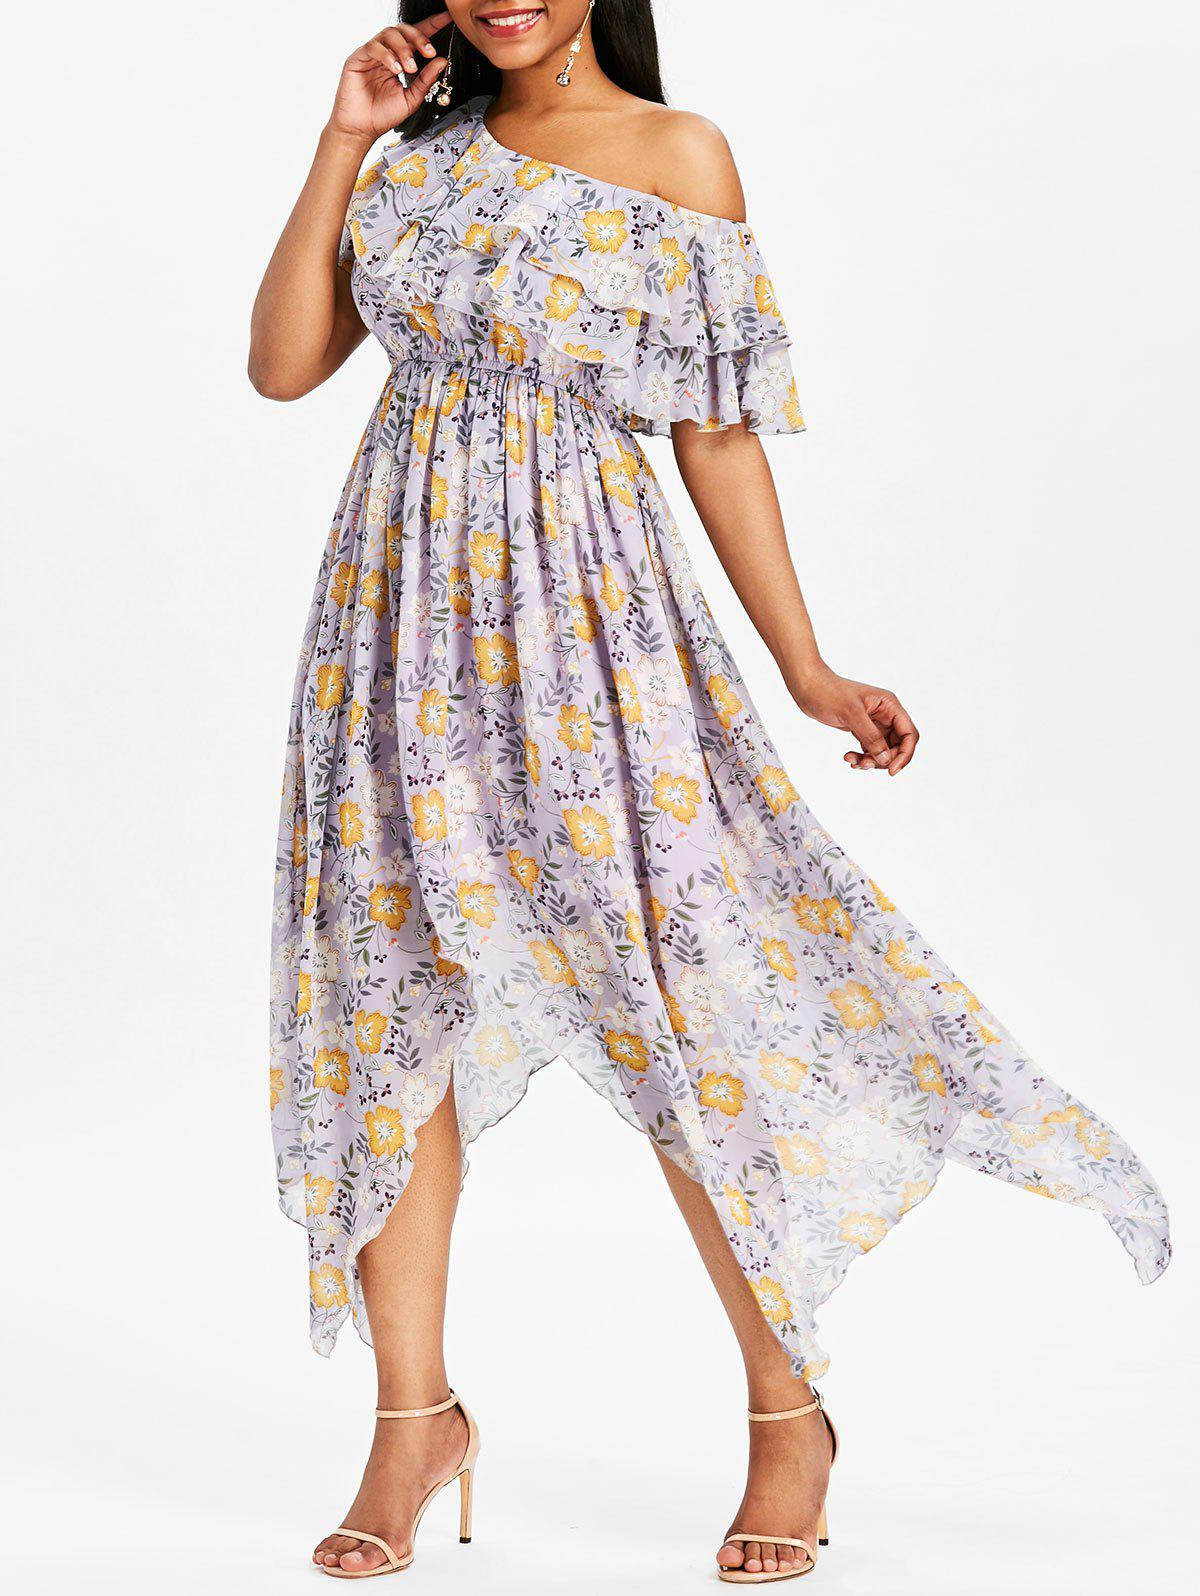 Unique Ruffle High Waisted Floral Dress